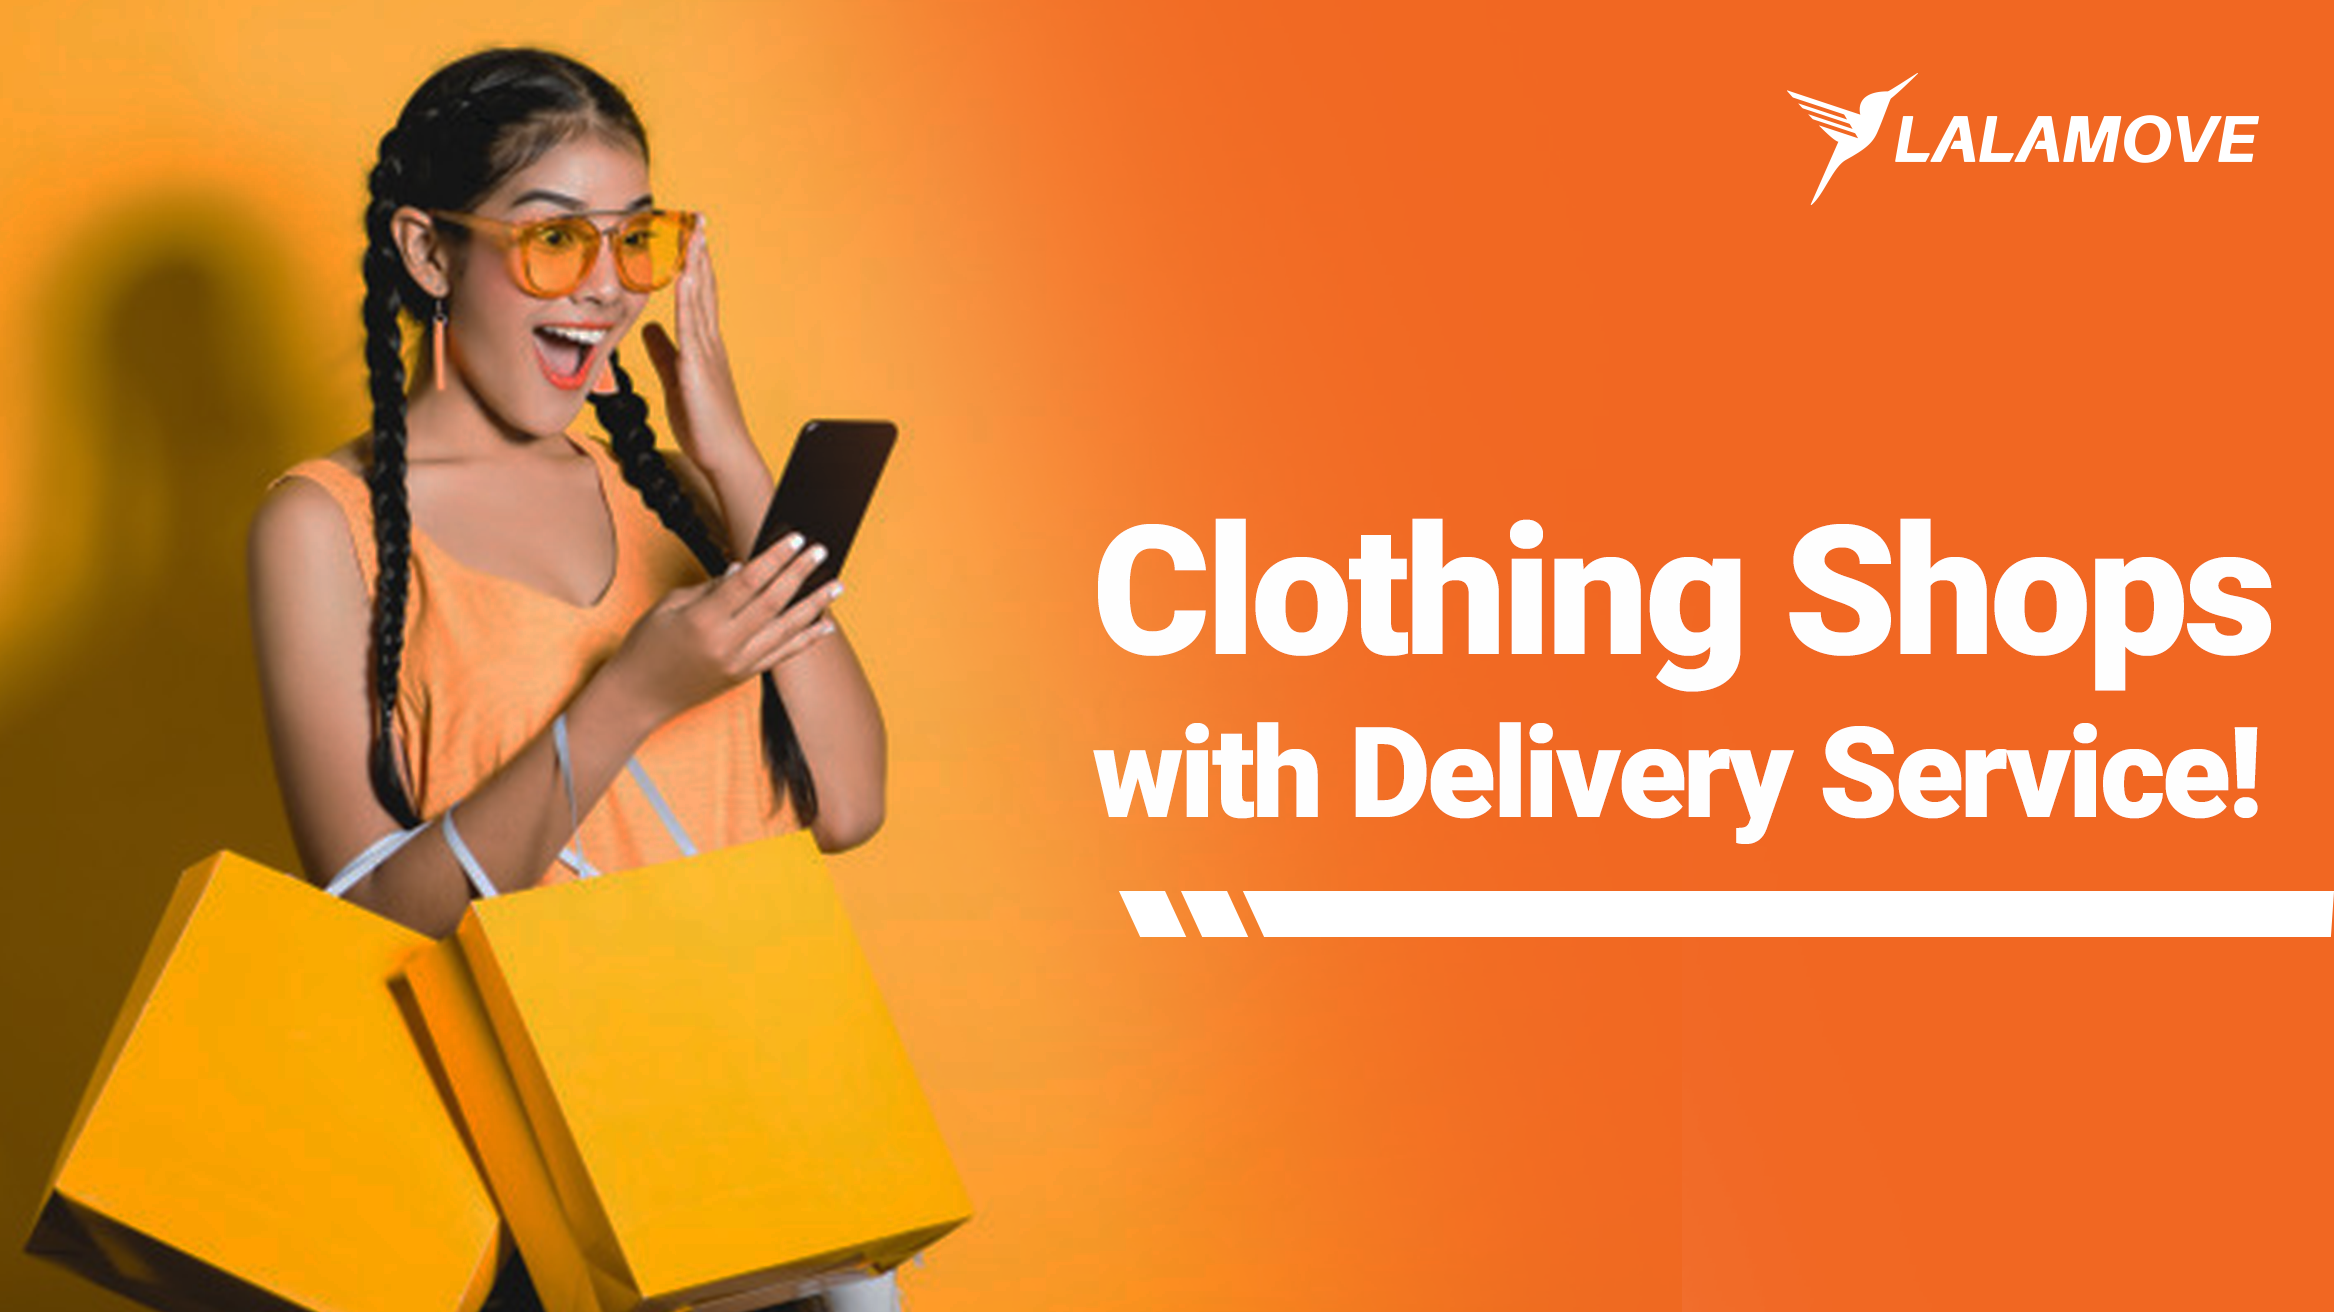 Online Clothing Shops That Deliver the Trendiest Clothes and Hottest Looks!